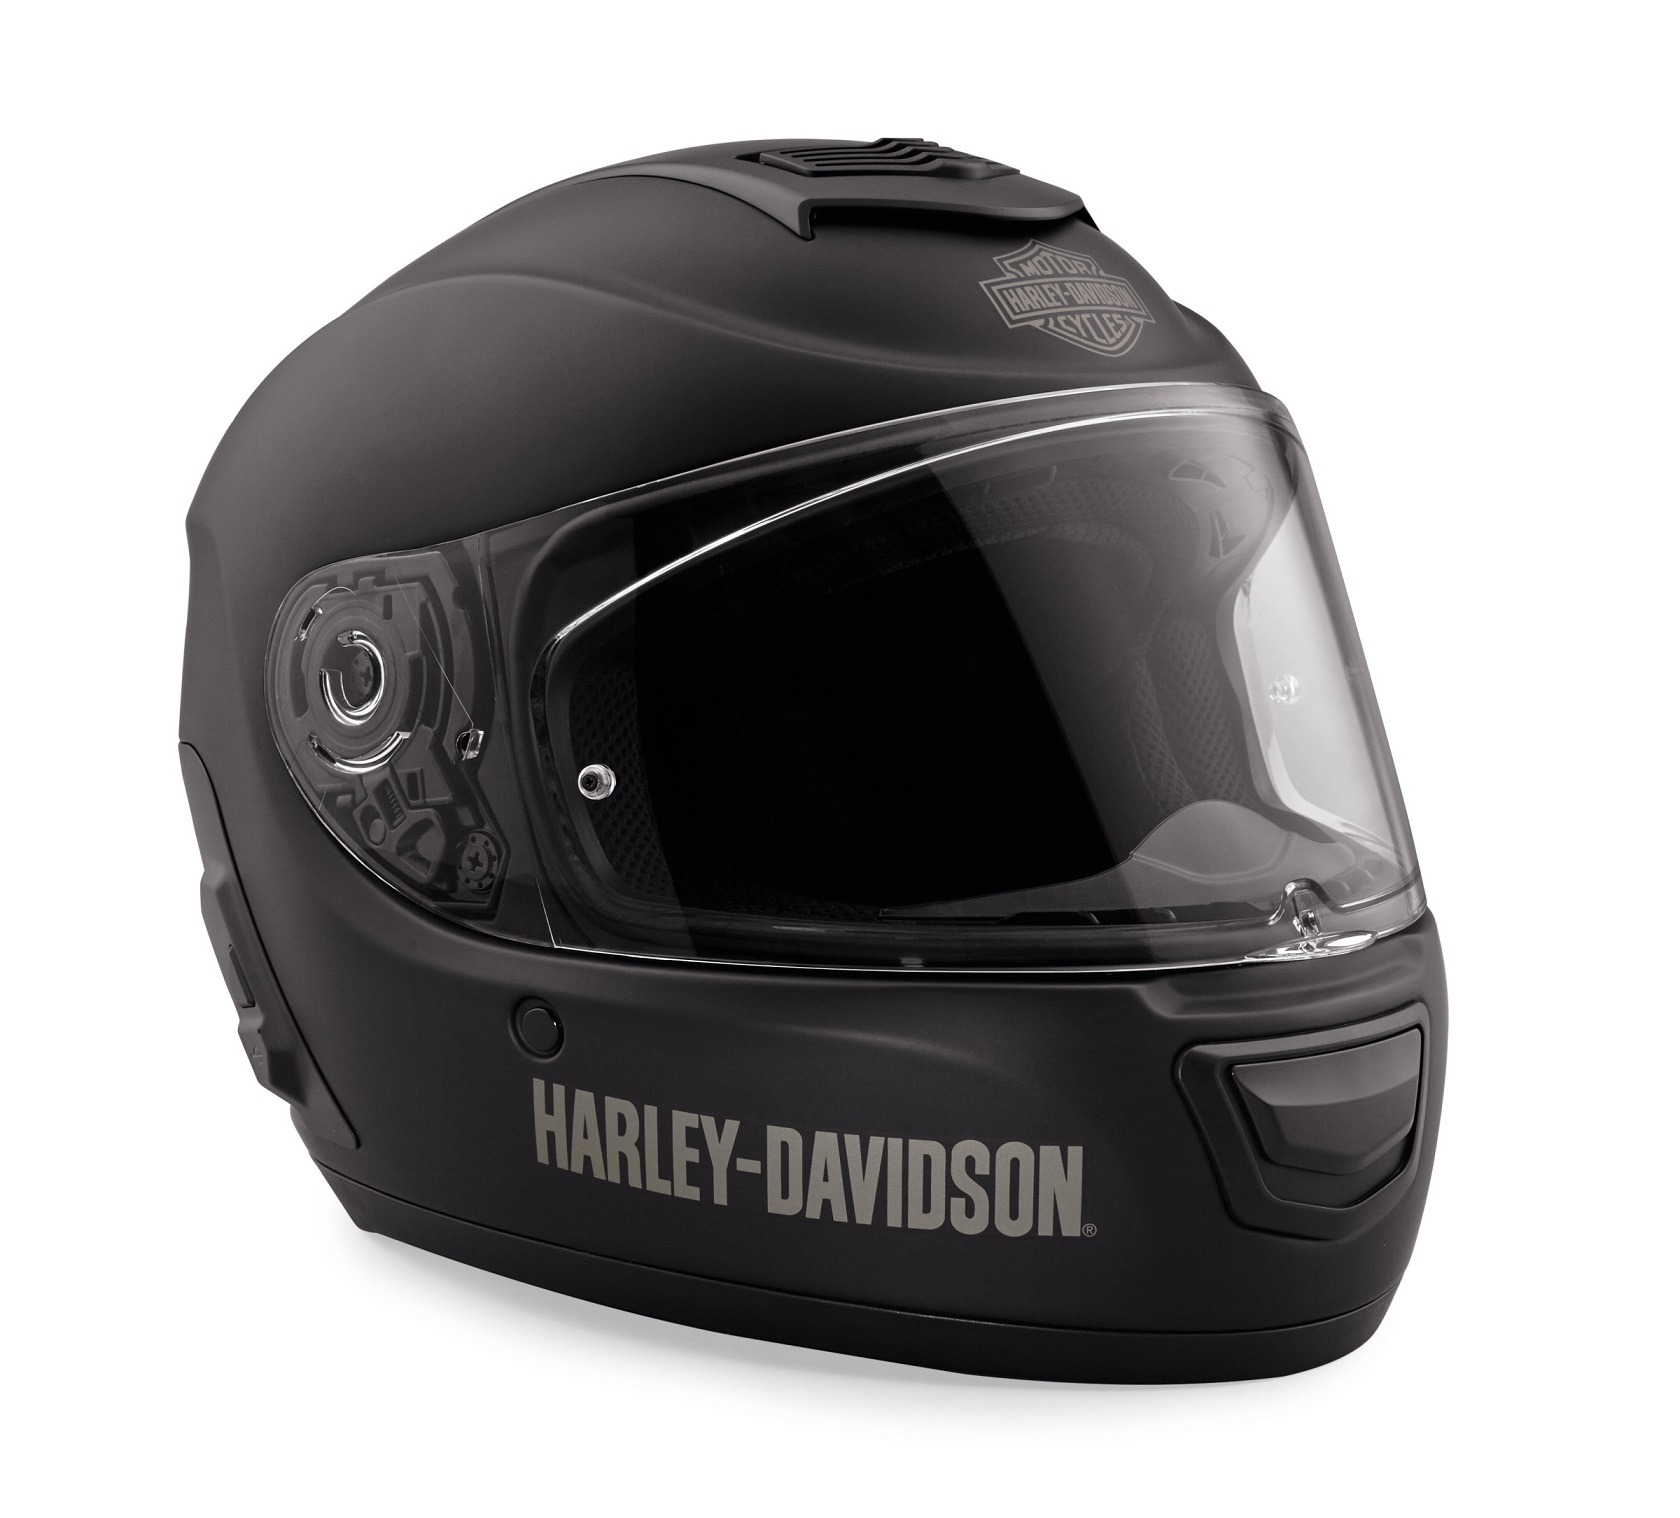 59997bc26 New Cutting Edge Helmets With Unique Harley-Davidson Style ...